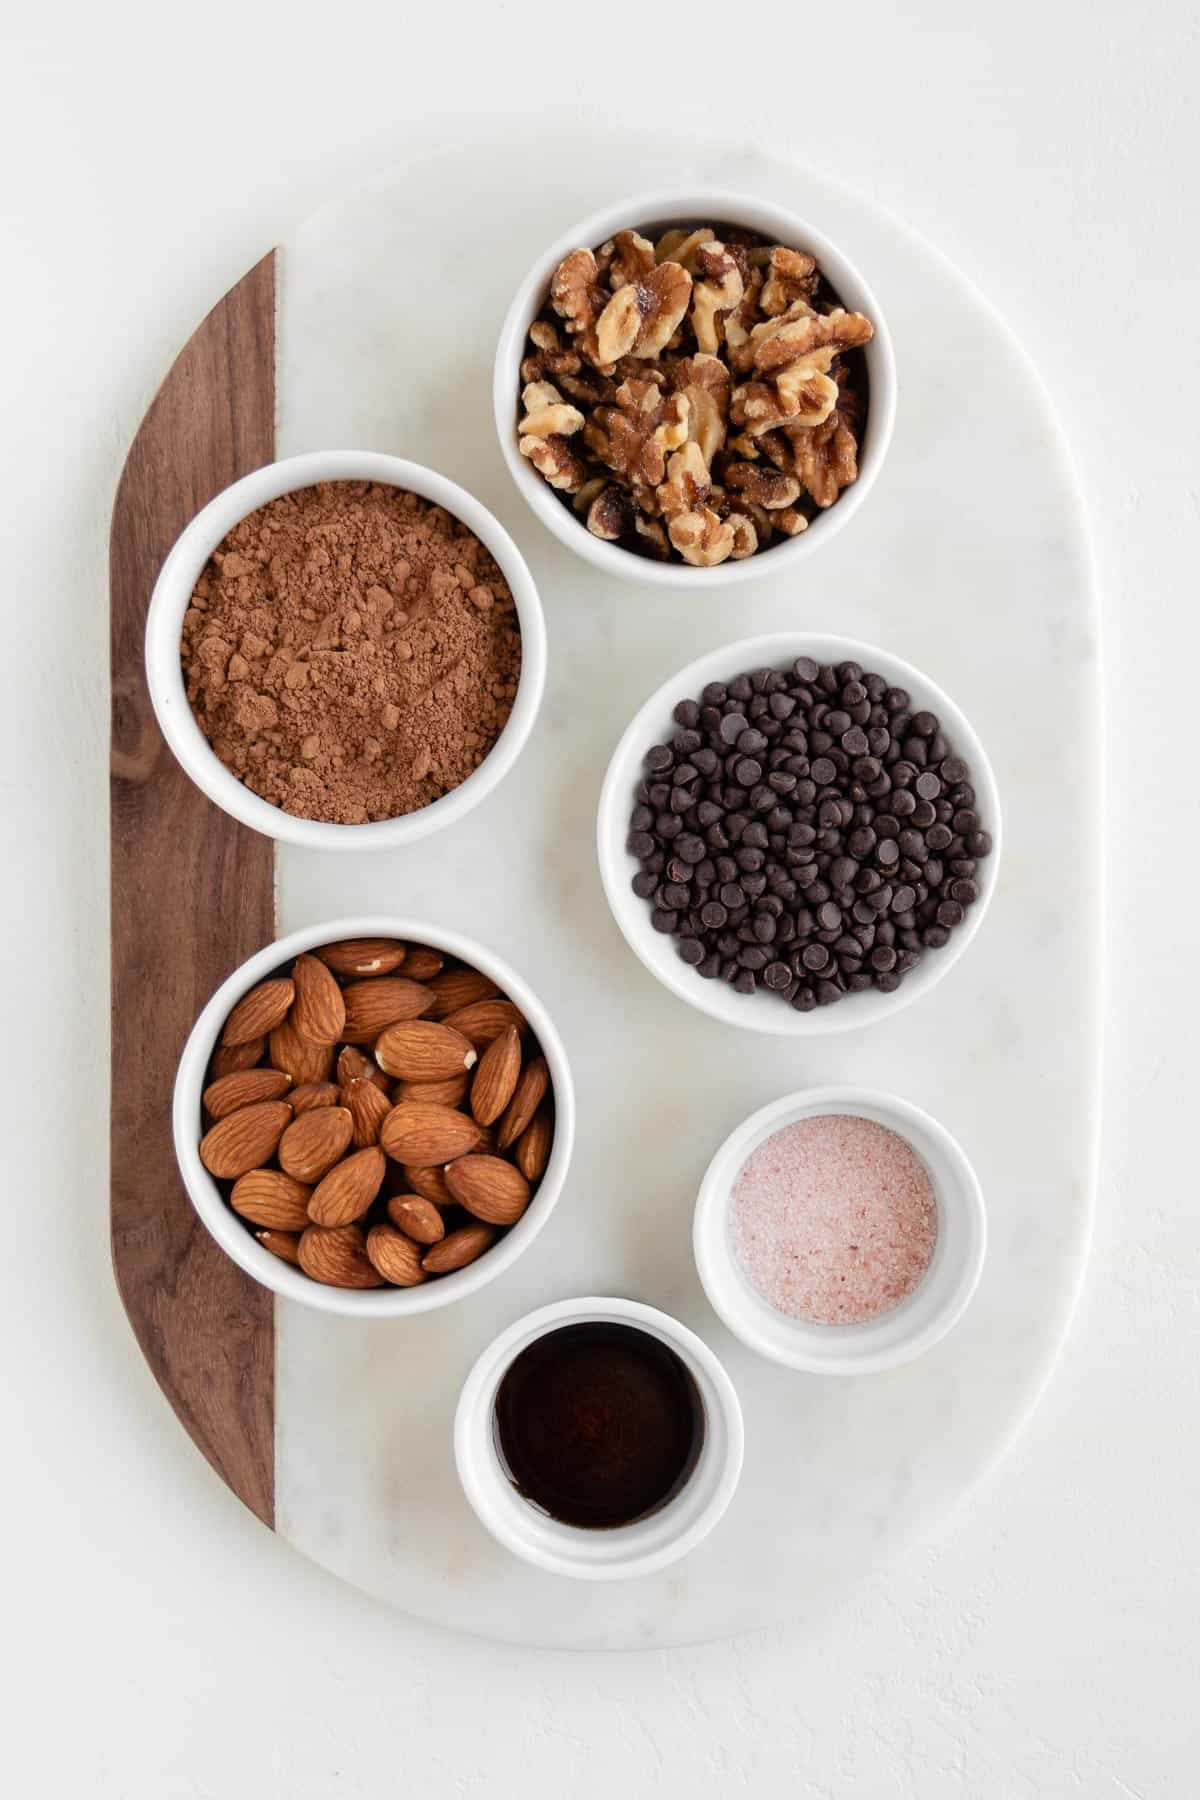 small bowls of walnuts, almonds, cacao powder, chocolate chips, vanilla, and salt on a marble board